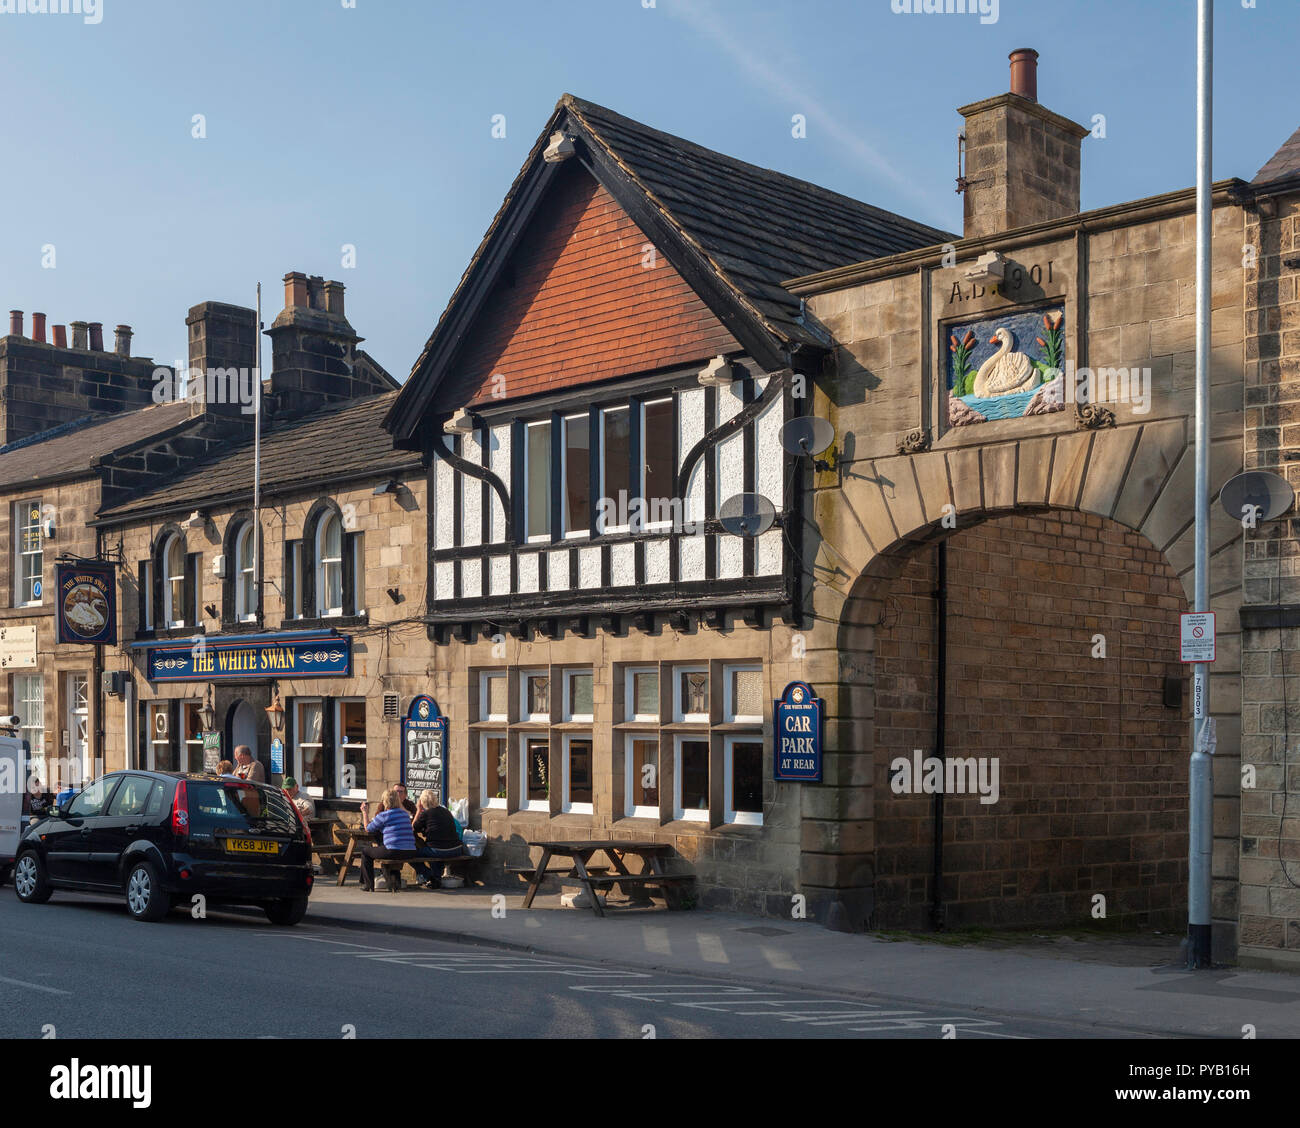 The White Swan Inn on Boroughgate in Otley,  West Yorkshire - Stock Image